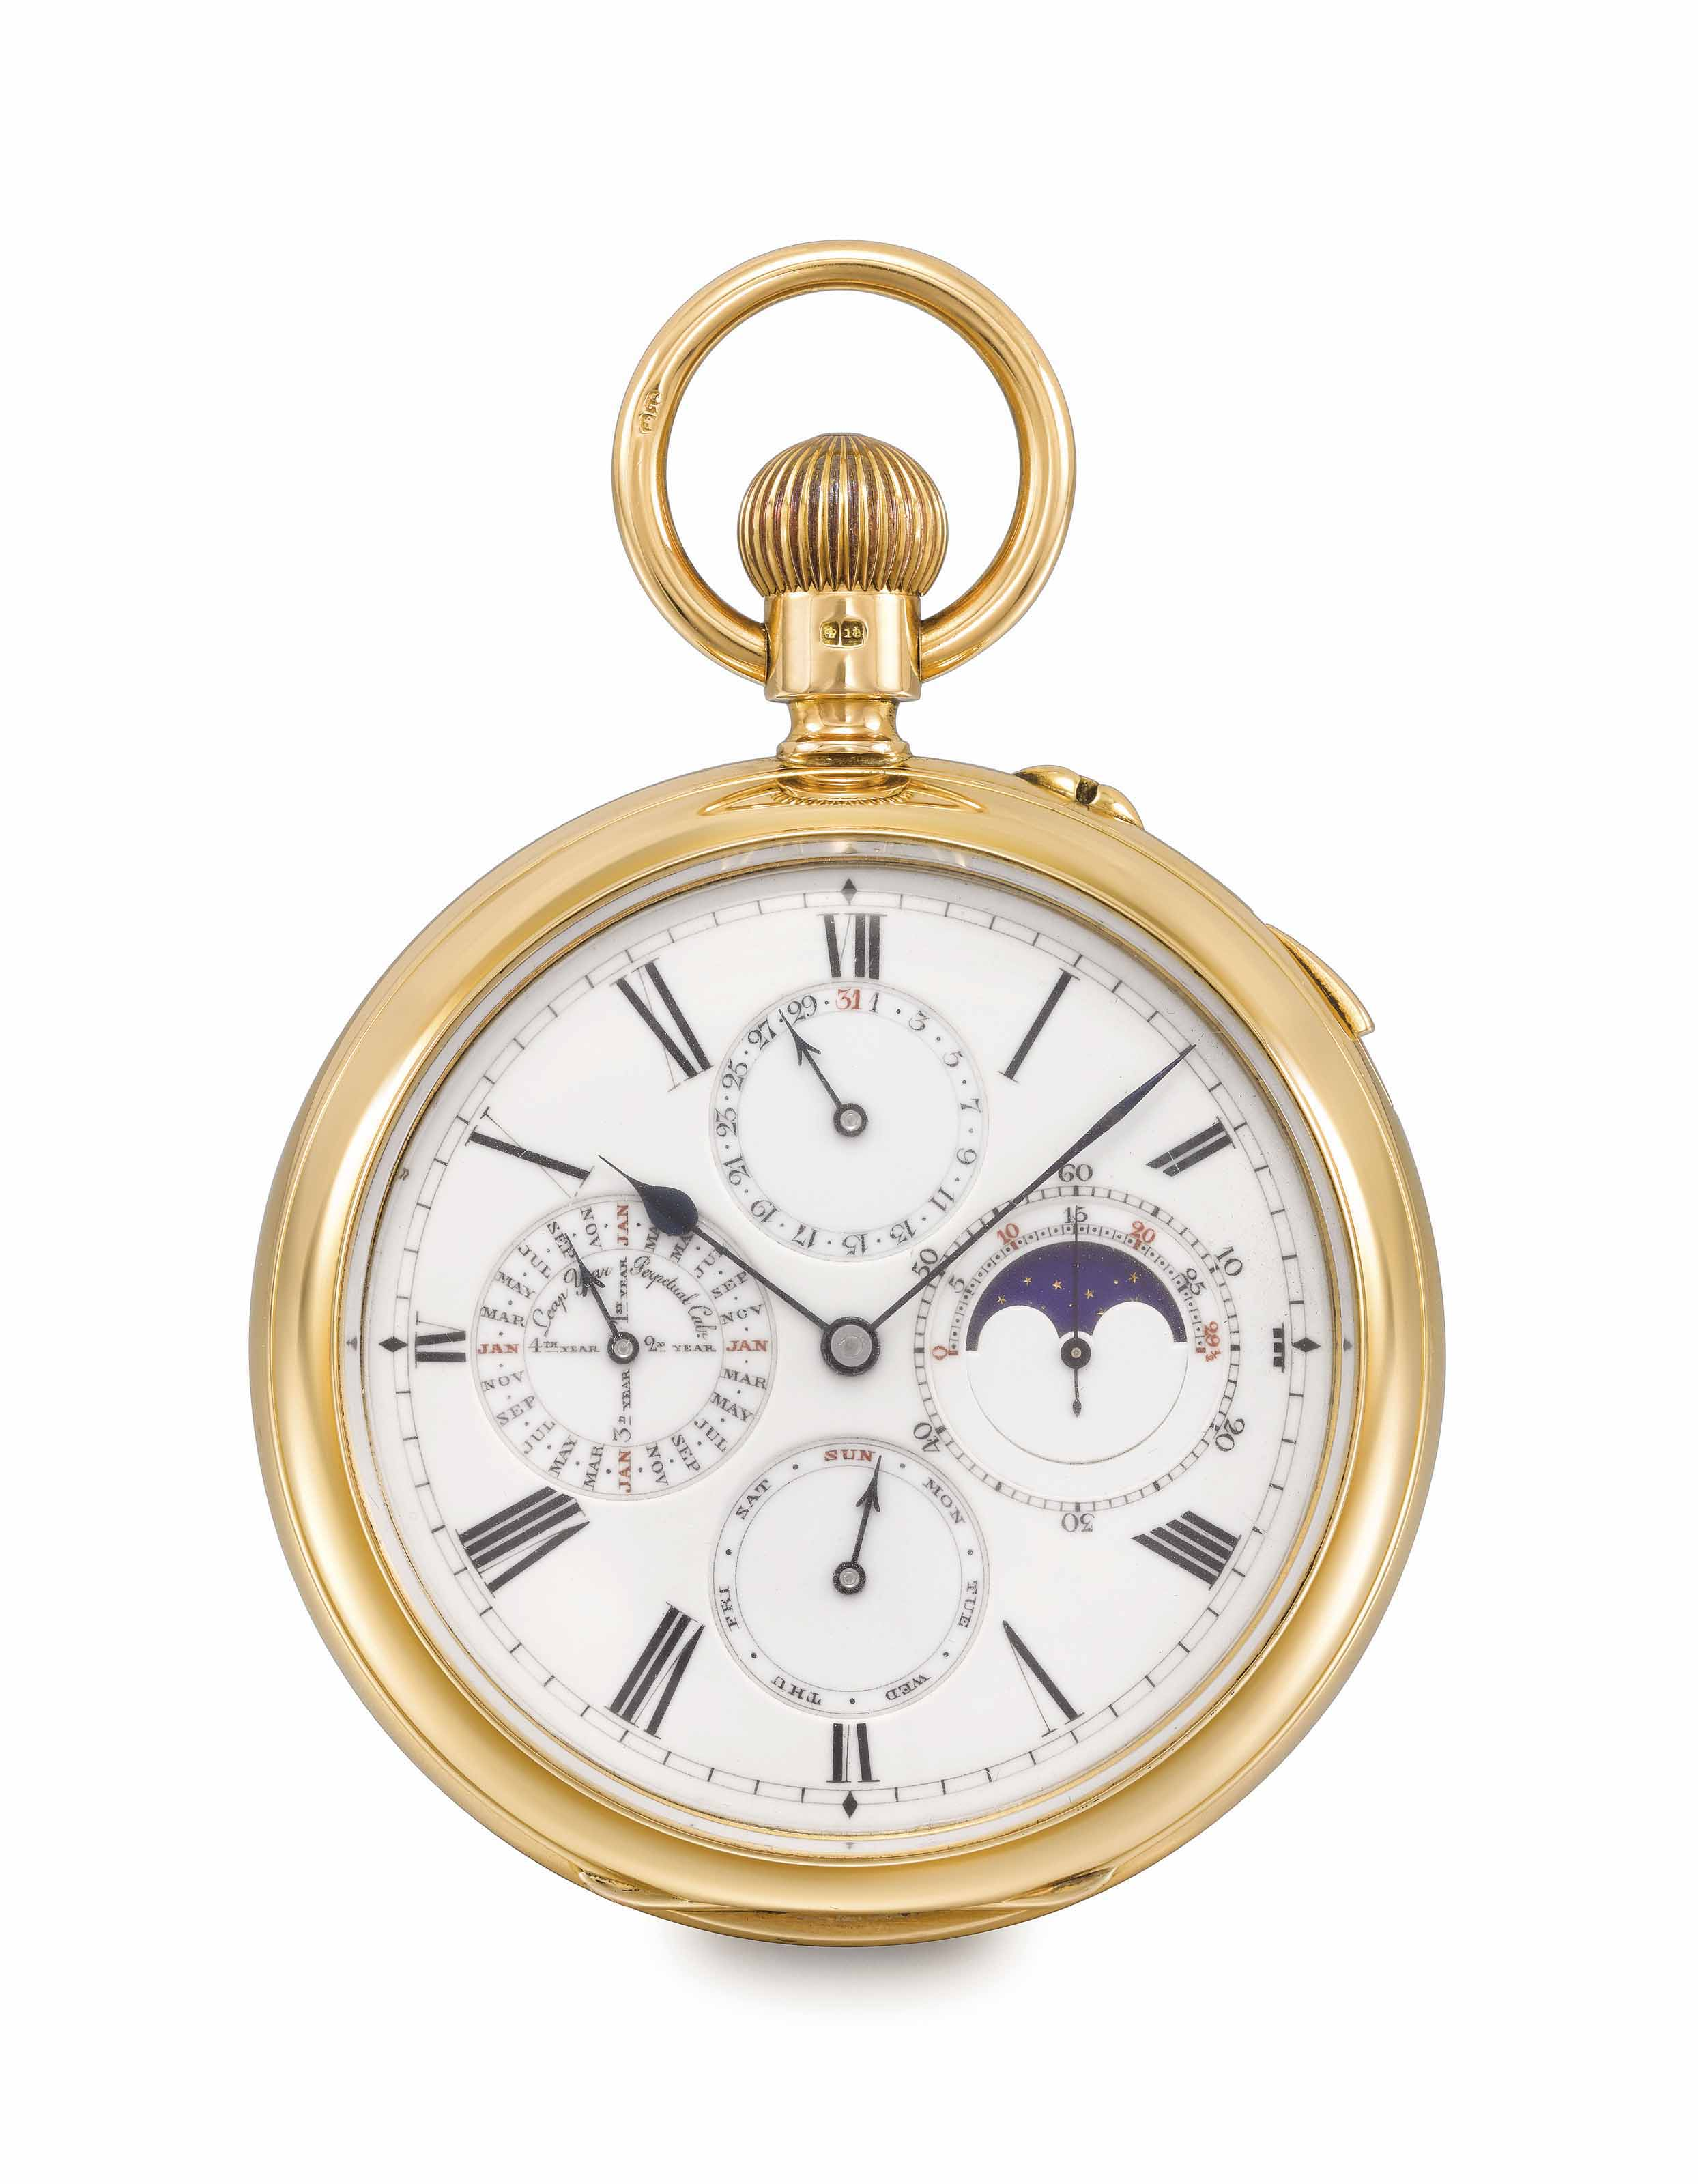 Le Roy & Son. An extremely fine, rare and large 18K gold openface two-train trip-minute repeating Grande and Petite Sonnerie keyless lever clockwatch with perpetual calendar, moon phases and lunar calendar